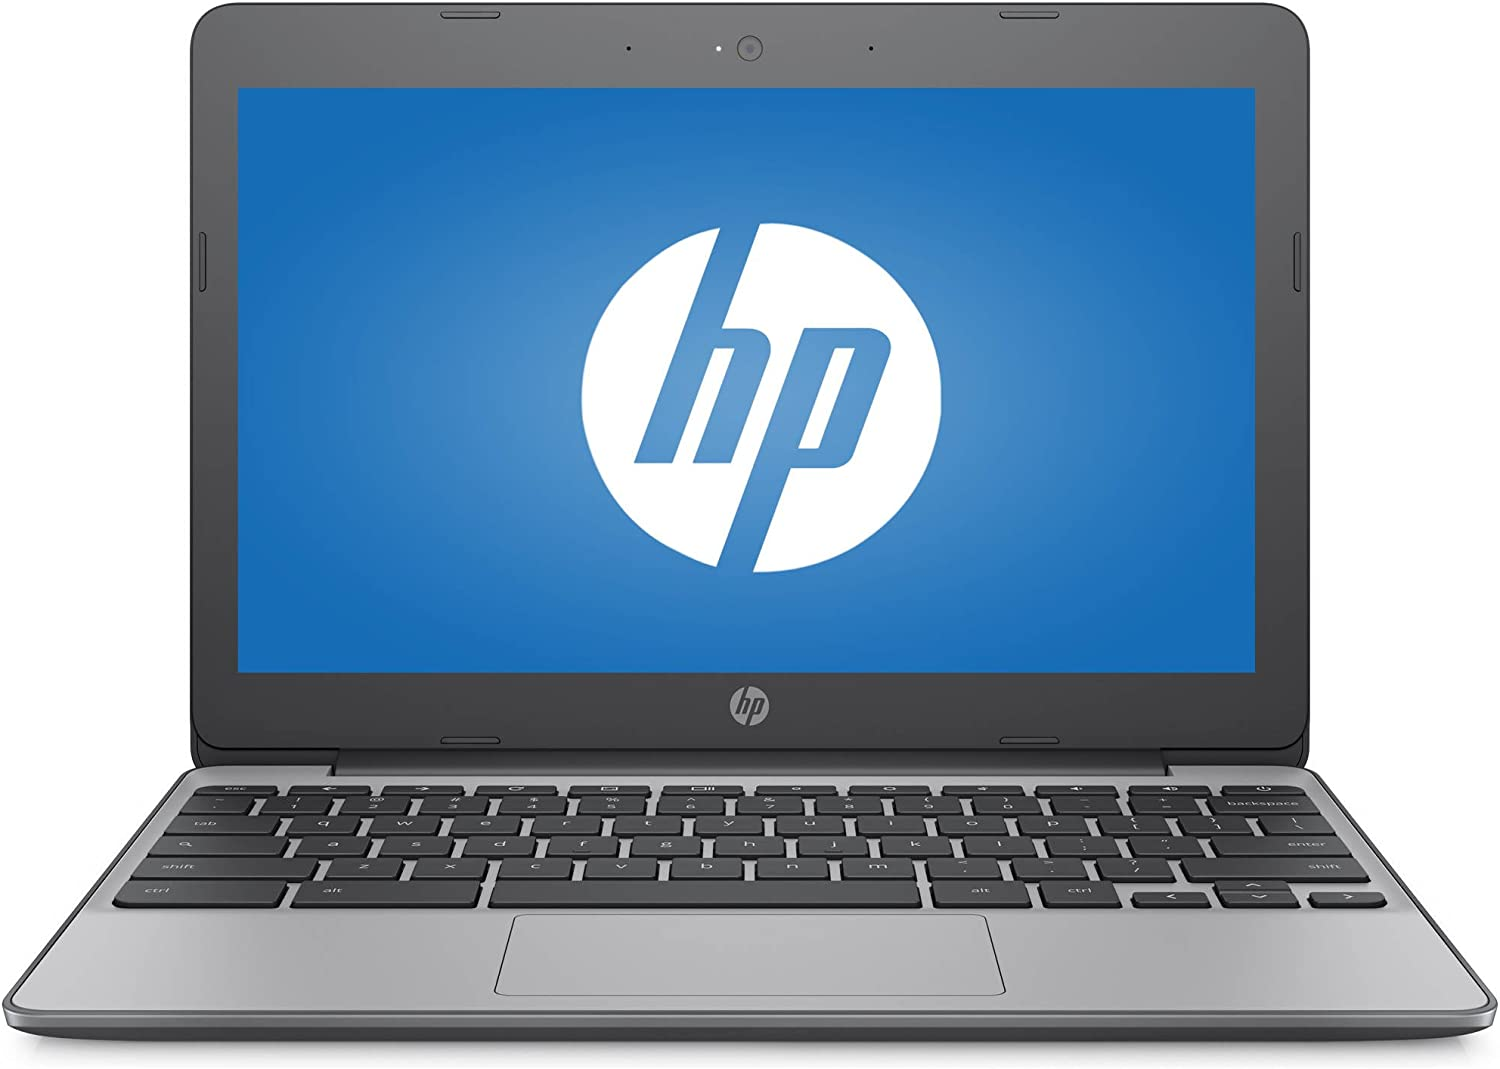 Premium HP High Performance 11.6in HD Chromebook - Intel Dual-Core Celeron N3060 Up to 2.48GHz, 4GB DDR3, 16GB eMMC, 802.11bgn, Bluetooth 4.0, USB 3.1, Webcam, HDMI, Chrome OS (Renewed)